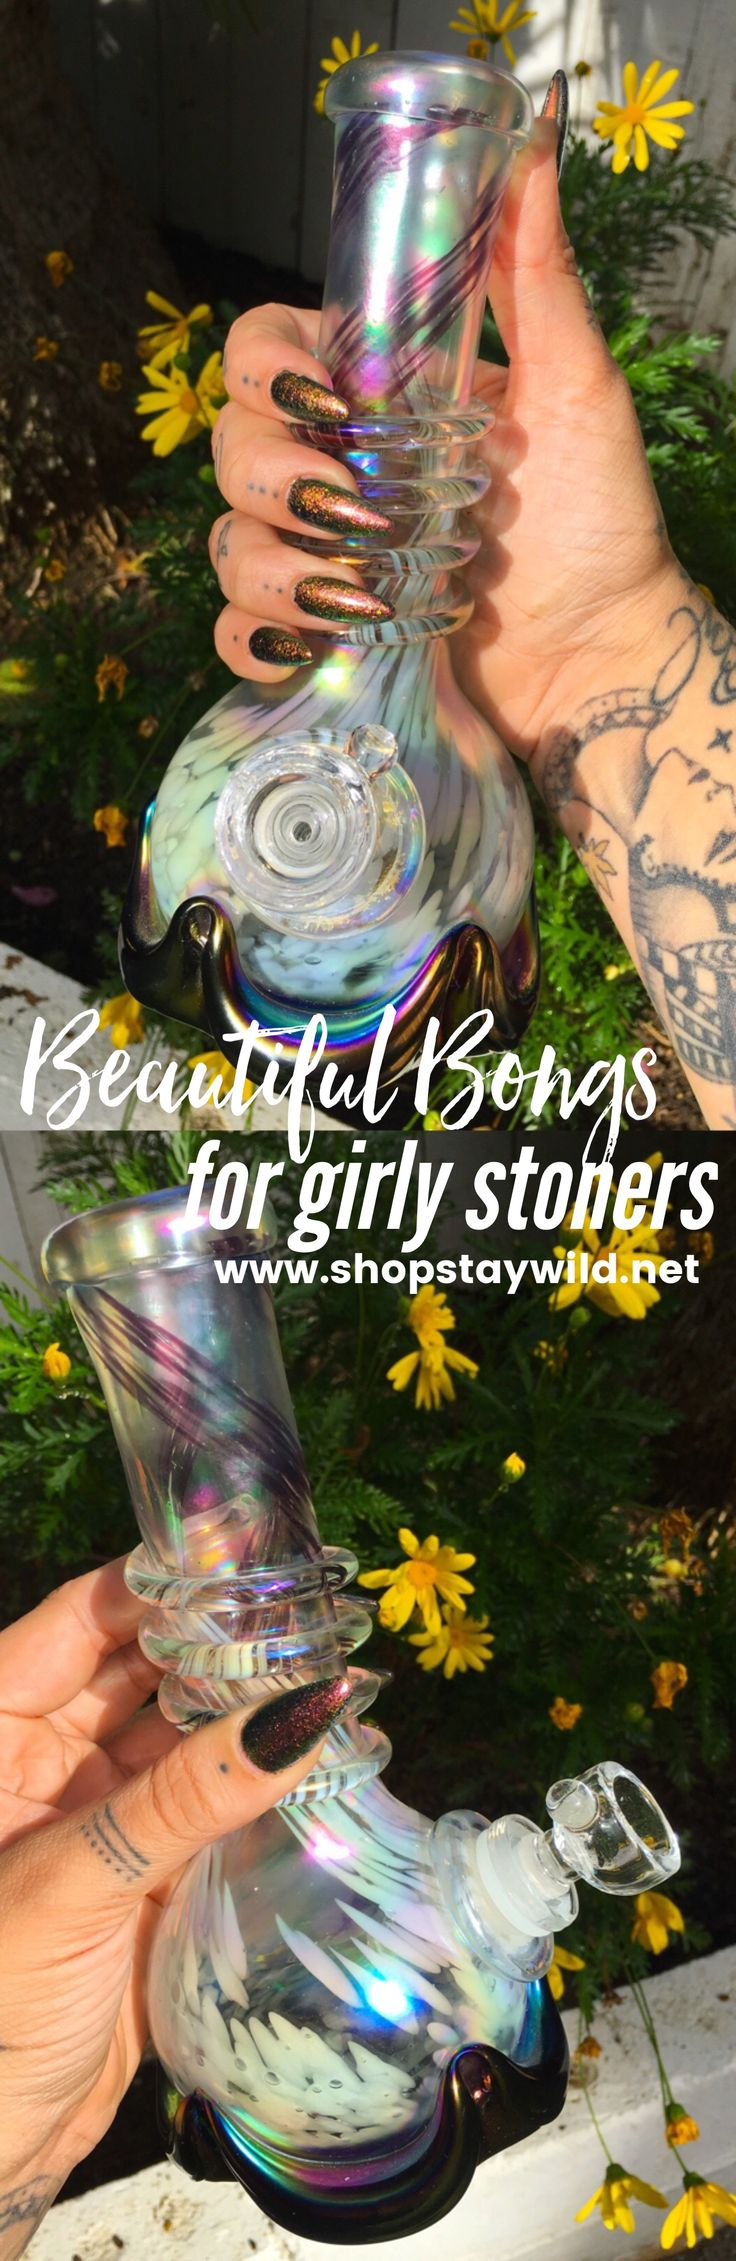 Girly, feminine bongs, water pipes and bubblers for women at www.shopstaywild.net women love weed too! Beautiful cannabis accessories like grinders, stash jars, rolling papers, bubblers and hemp body-care made just for girly girls that enjoy marijuana.